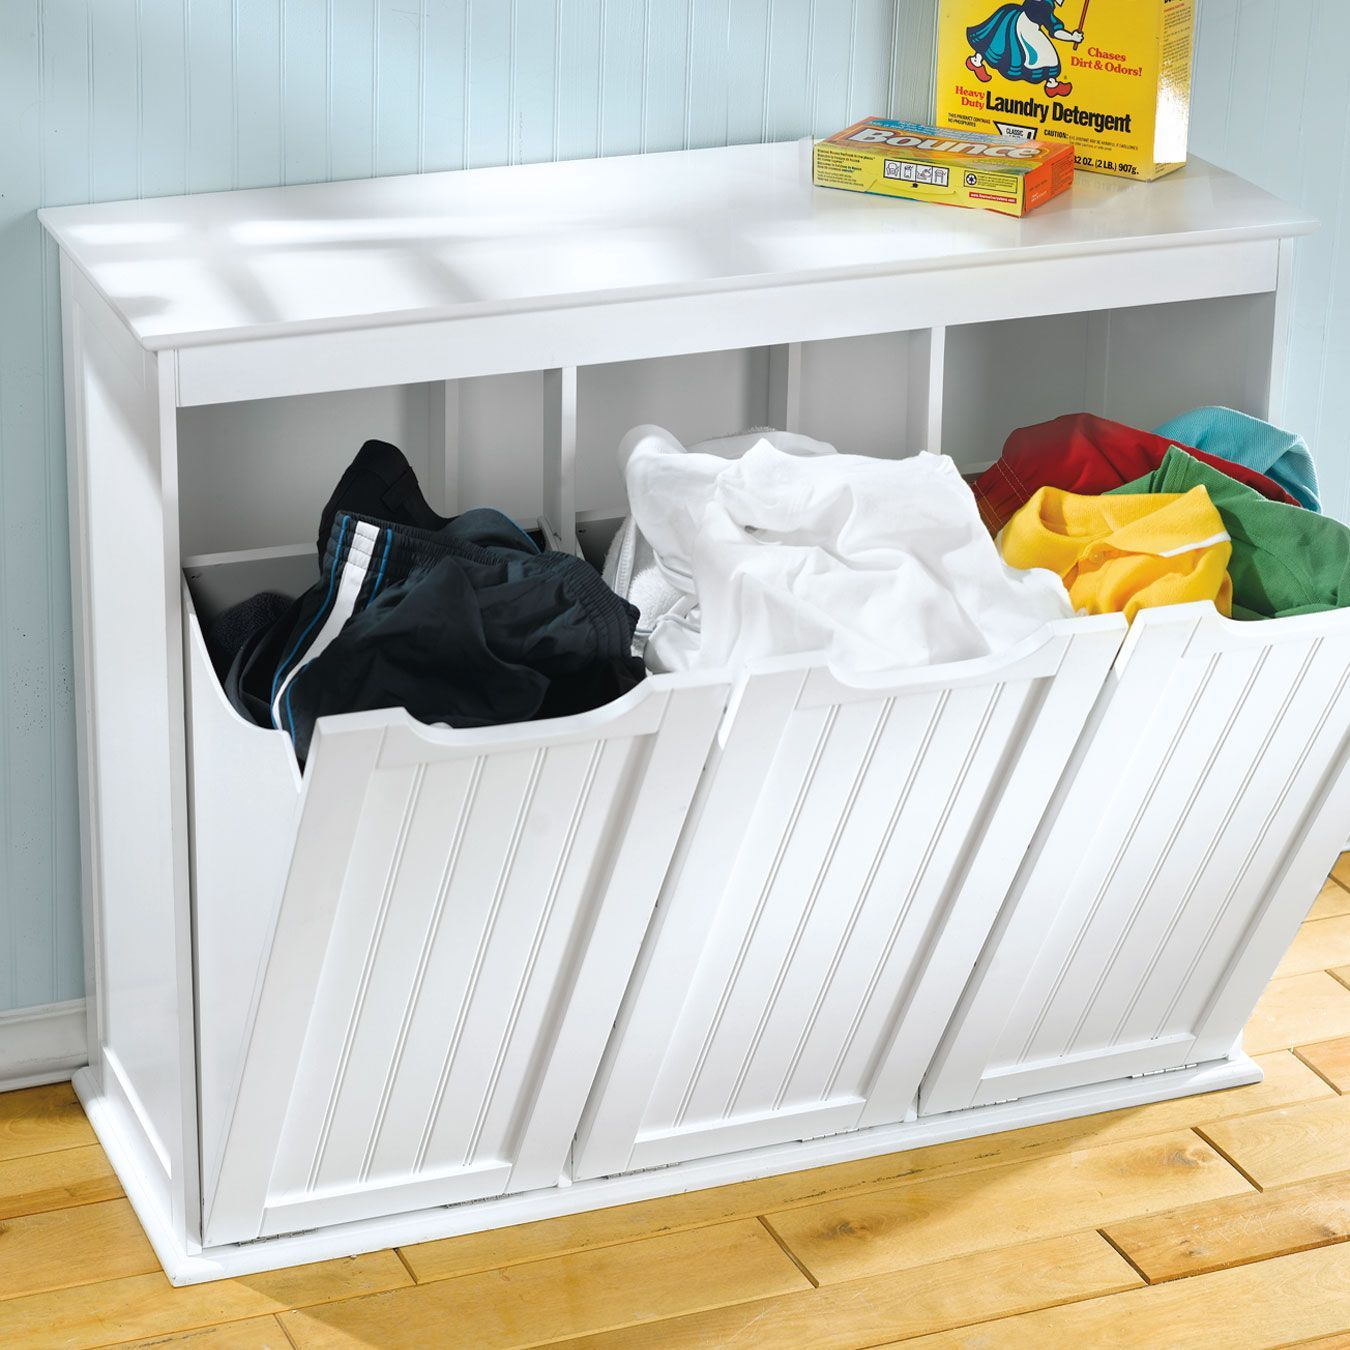 Tilt Out Laundry Hamper Can Be Described The Best Help To Hide Your Dirty Clothes They Are Usually Wire Installed Inside Wooden Cabinet